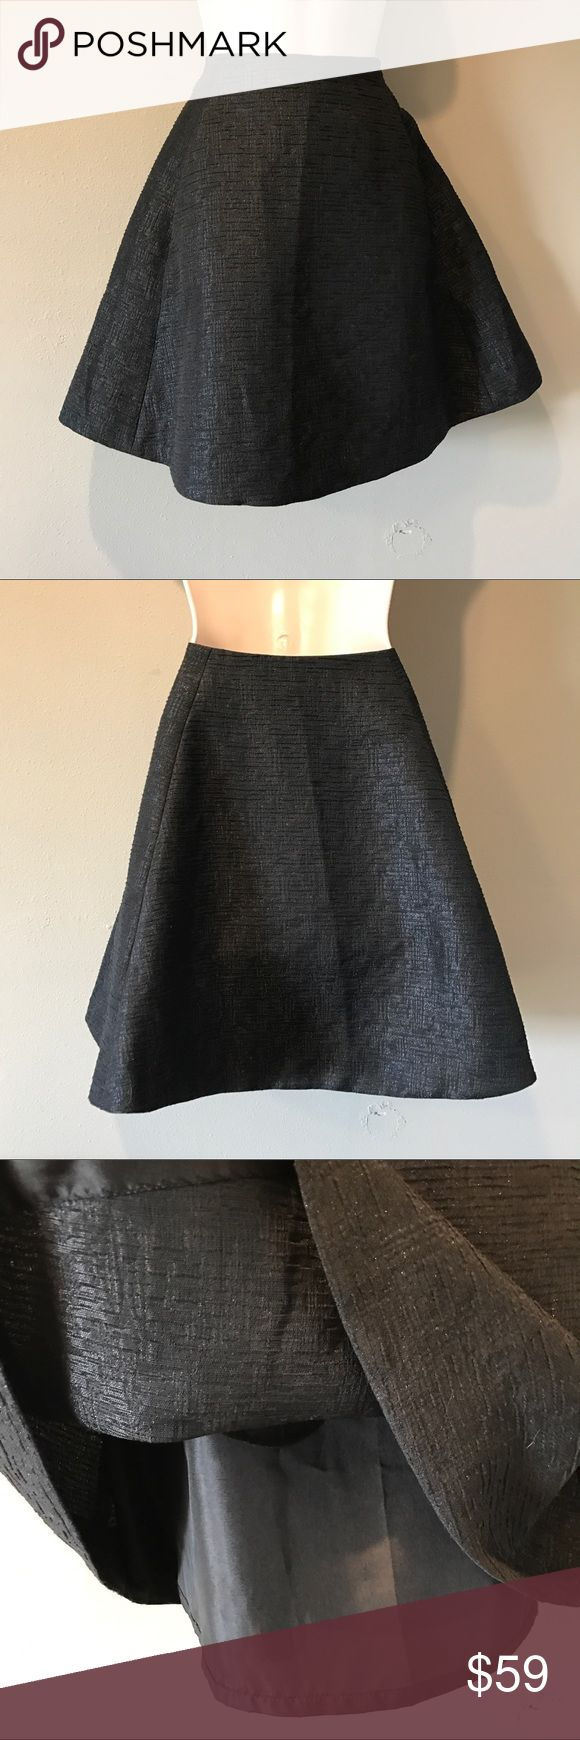 Kate Spade Black Circle Skirt, size 12 Adorable Kate spade black textured circle skirt in excellent pre-owned condition.  Fabric has a touch of metallic fiber which makes it sparkle :-) fully lined, size is 12 kate spade Skirts Circle & Skater